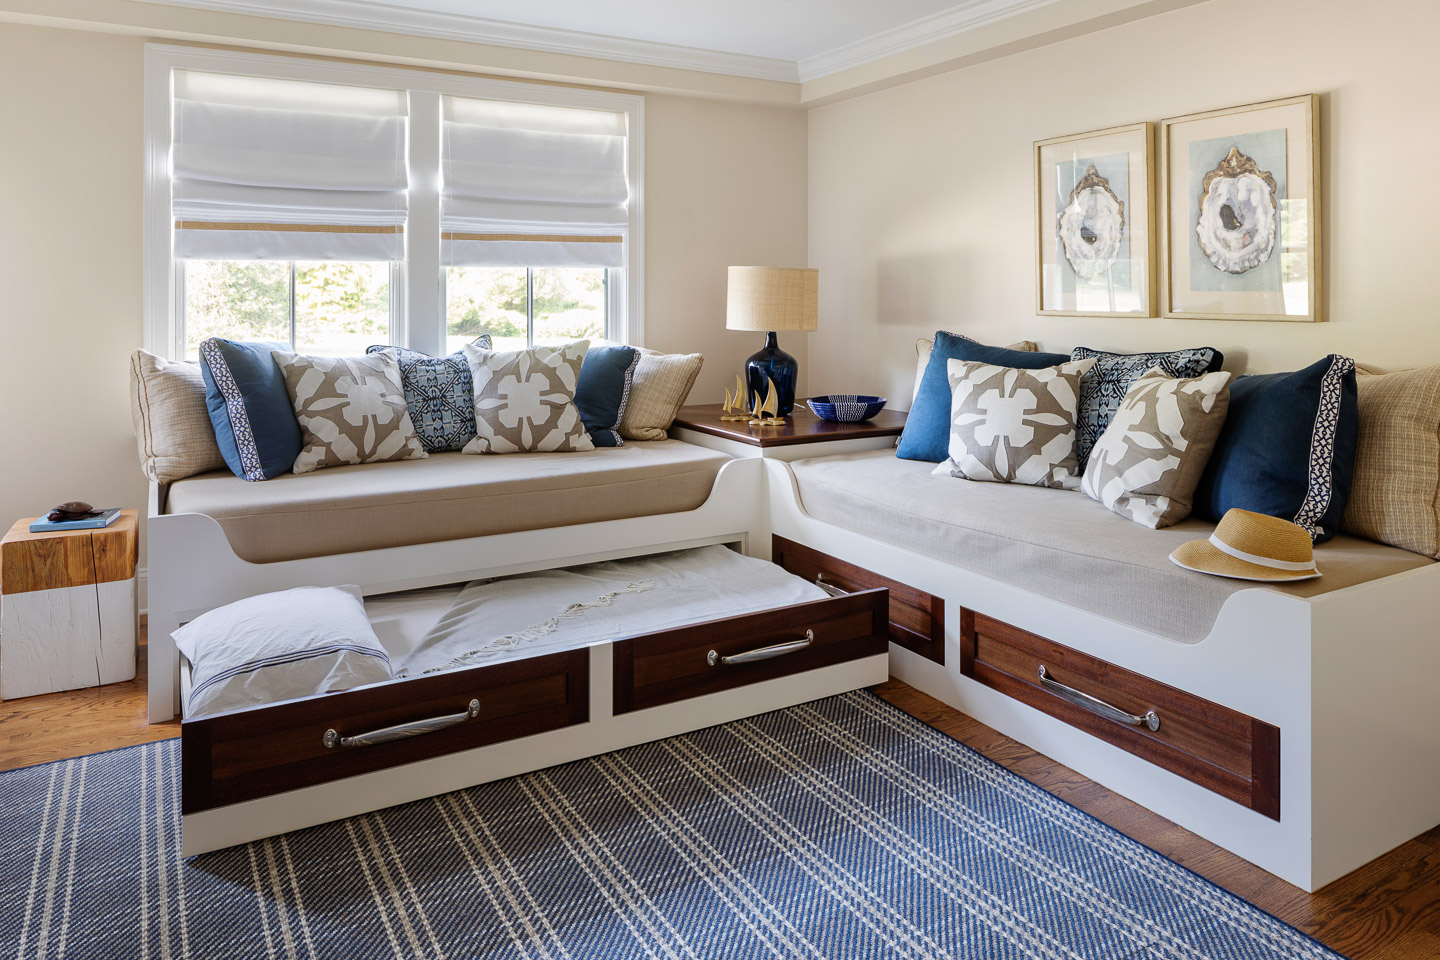 Rhode Island, interior design, interior designer, bedroom design, trundle bed, guest room